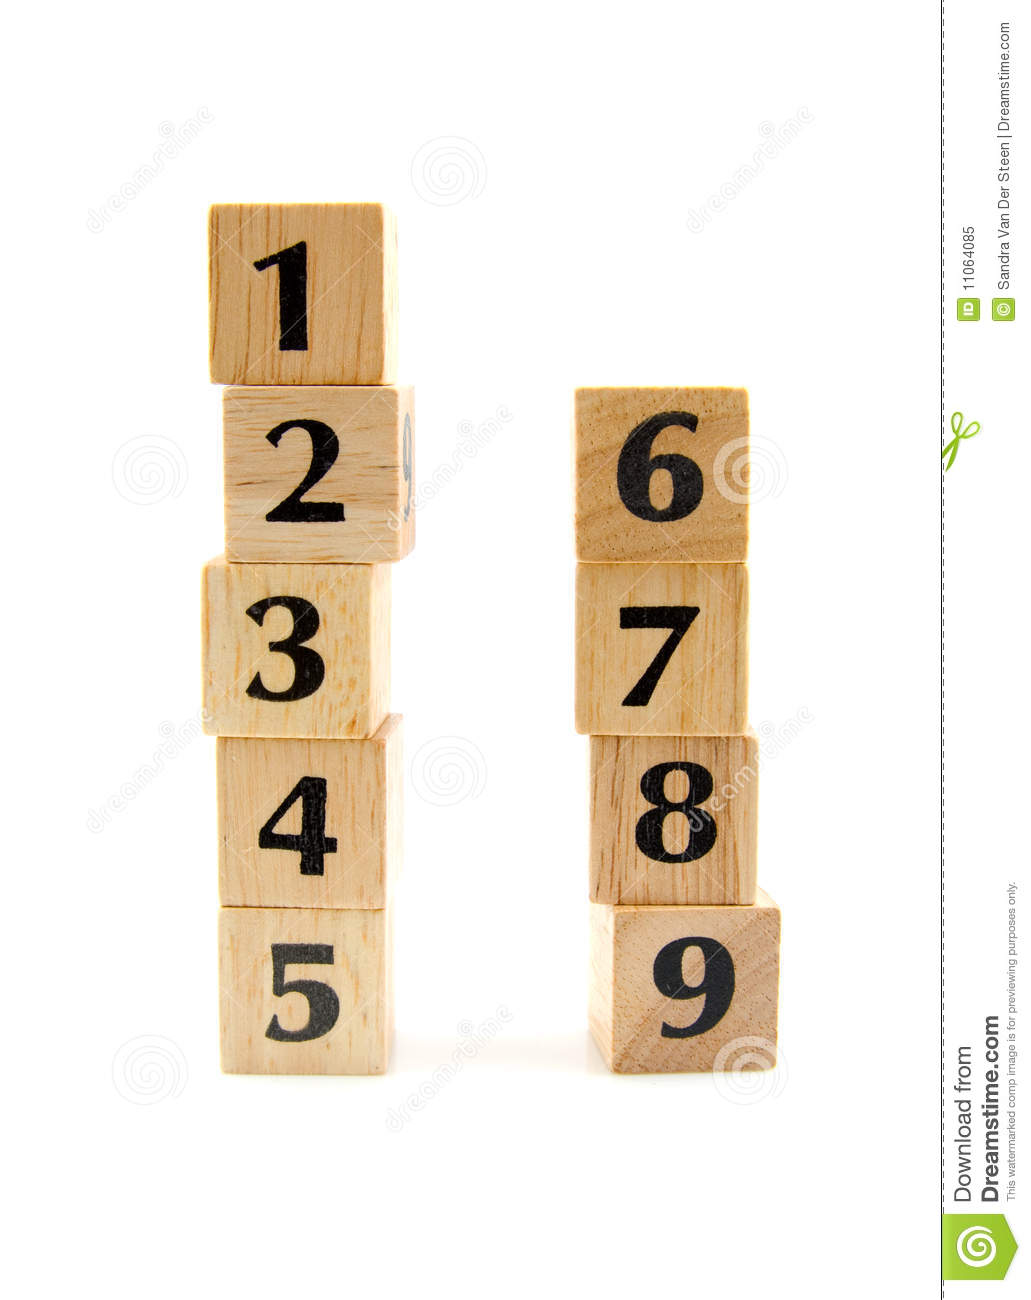 Stacked Wooden Blocks With Numbers Royalty Free Stock